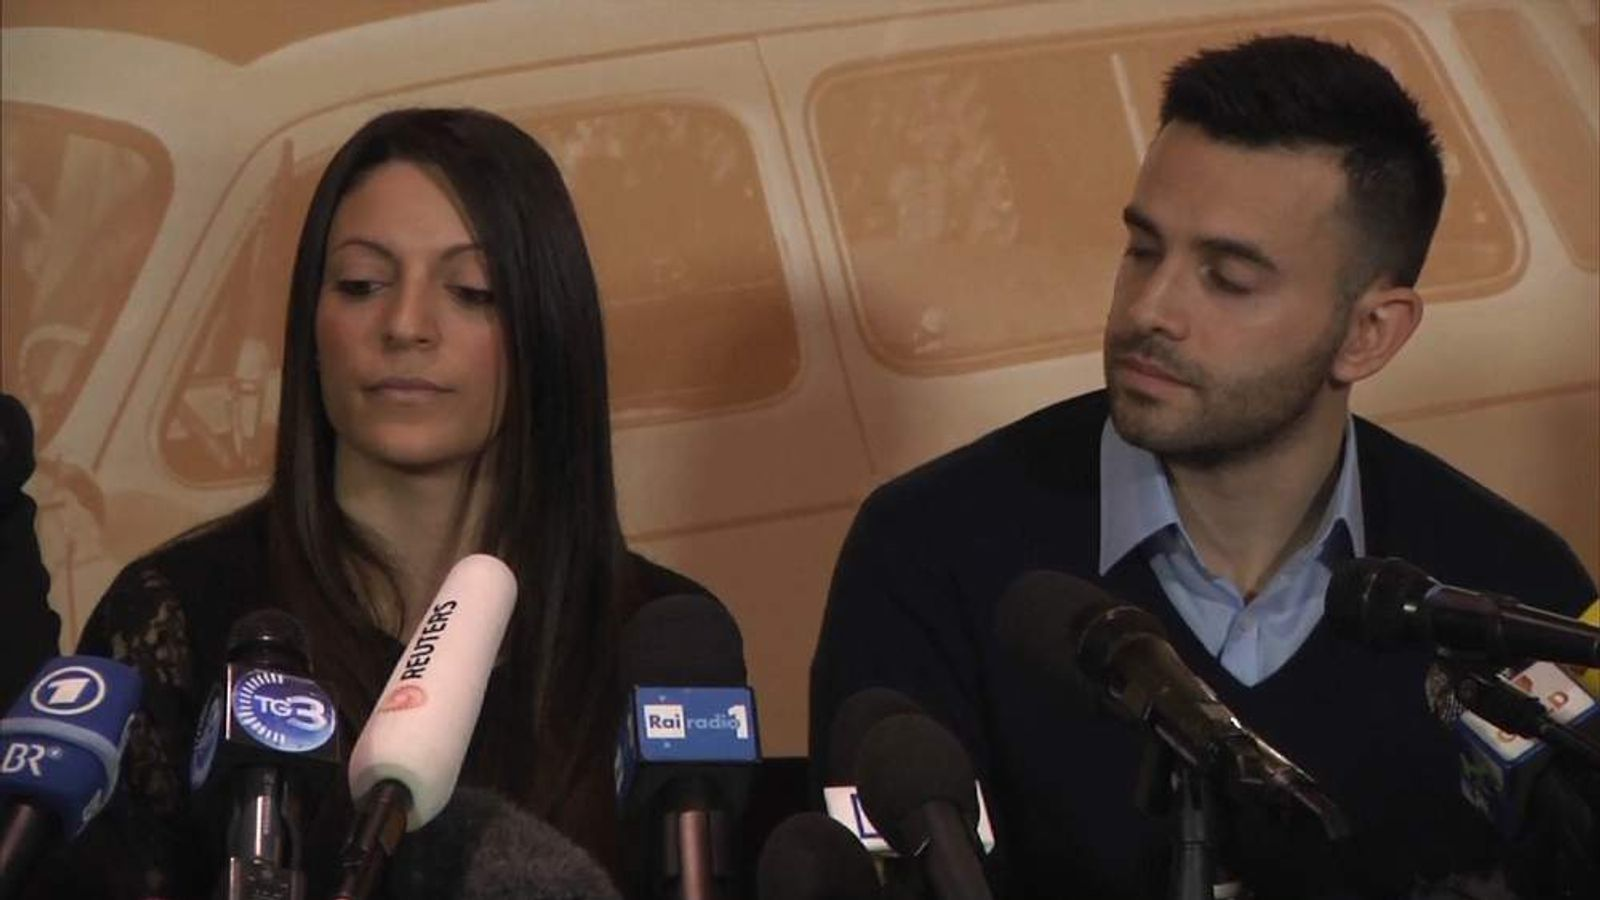 Meredith kercher brother and sister